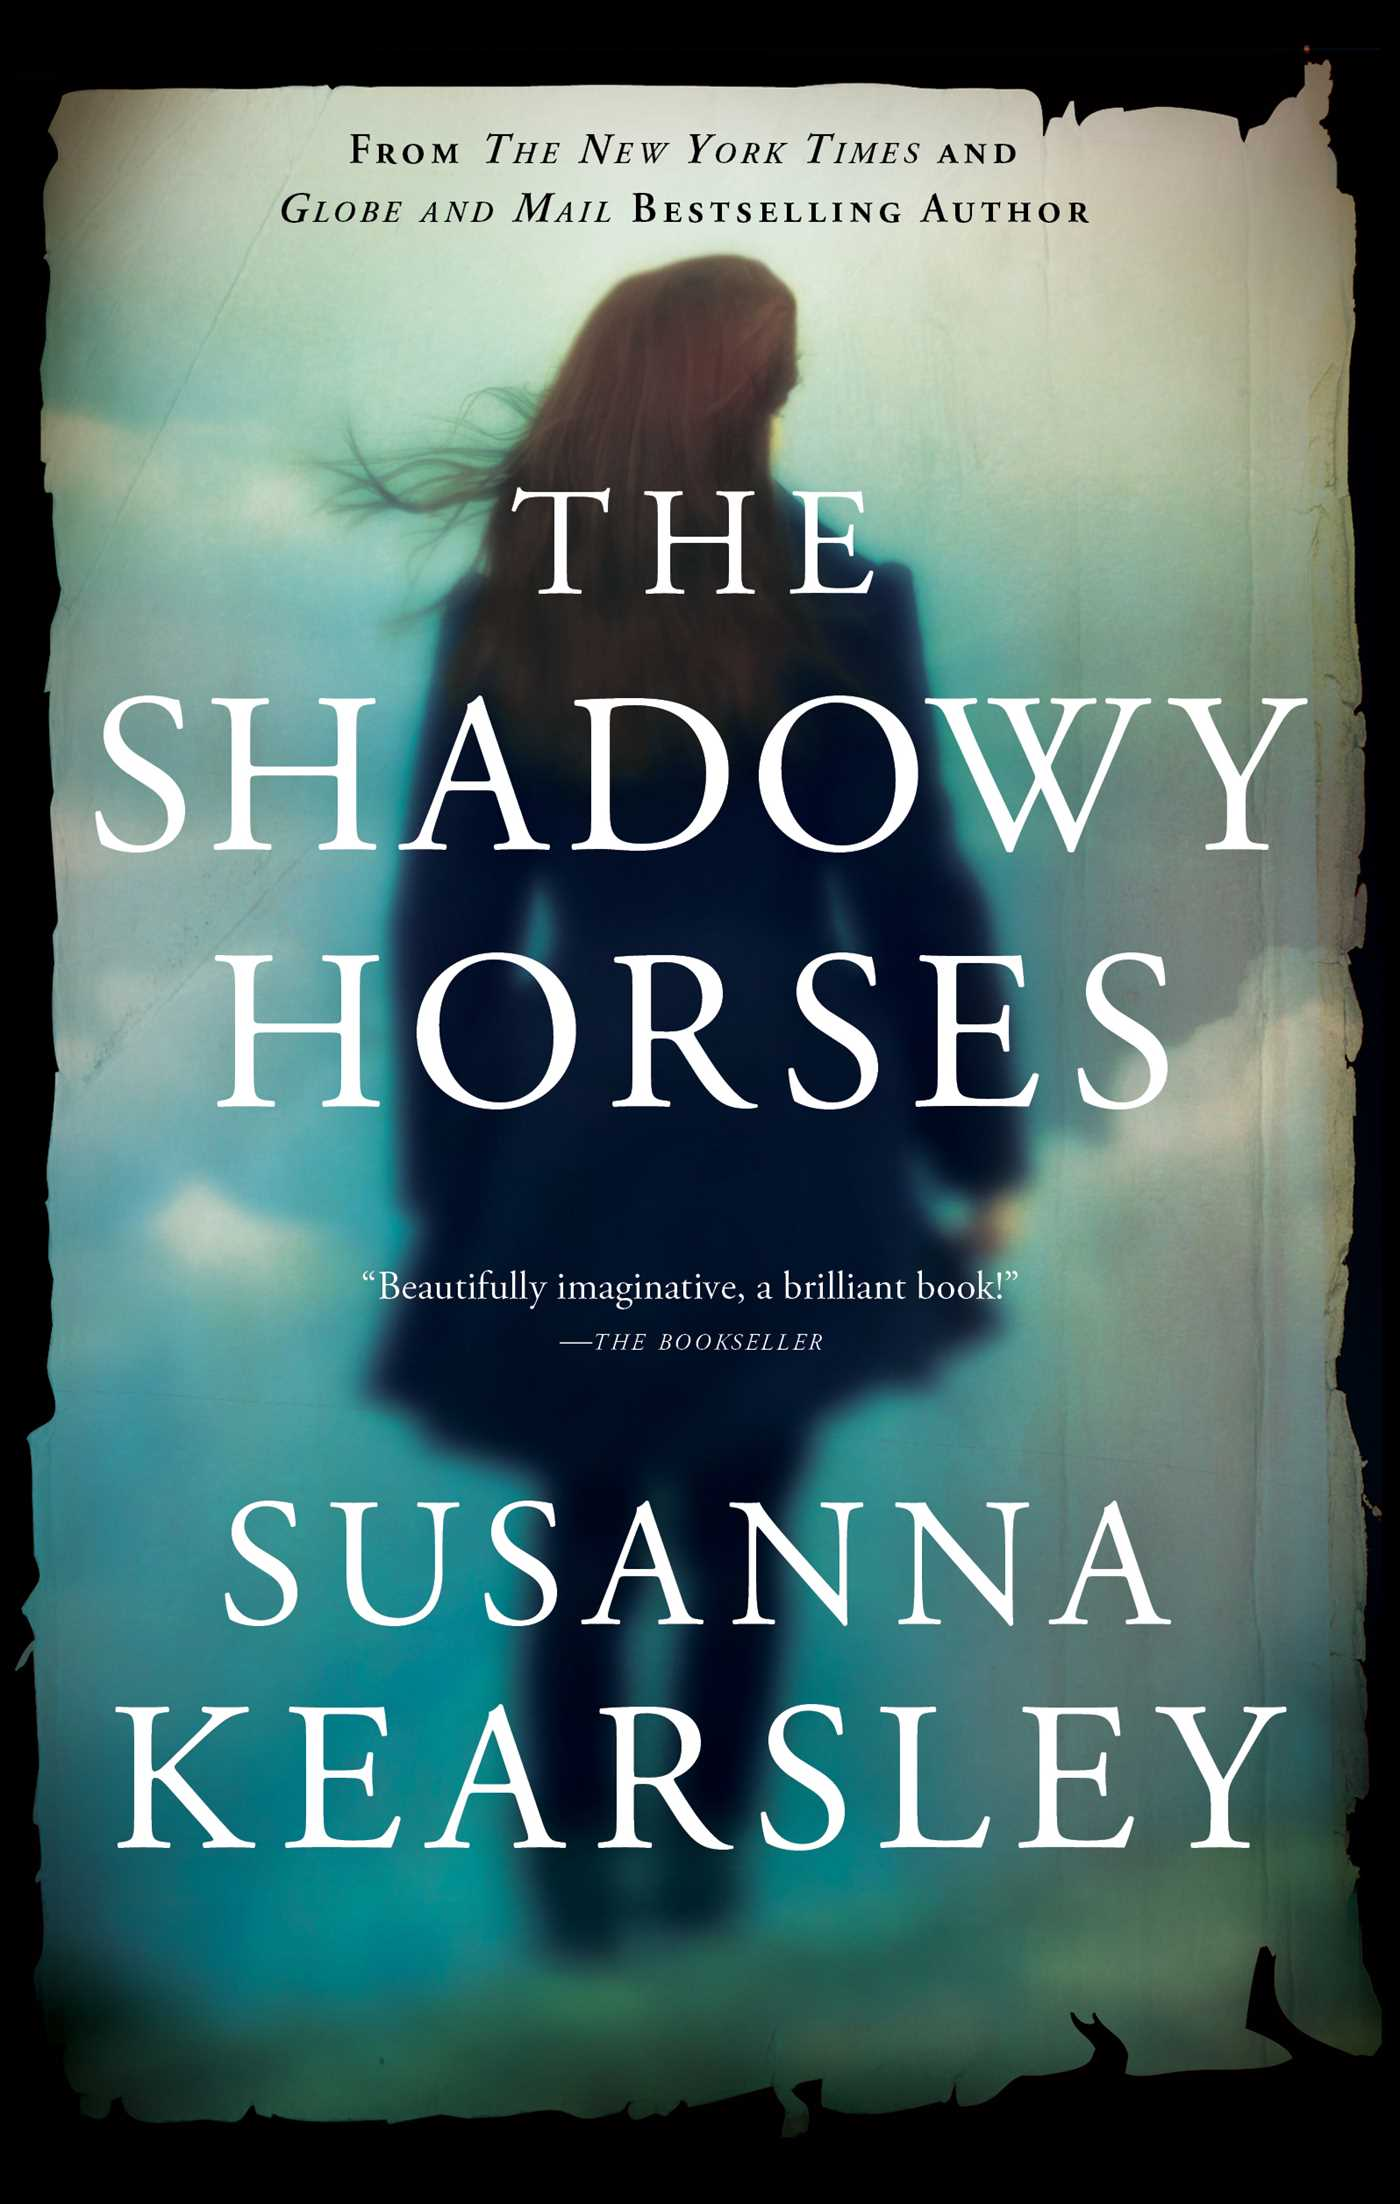 The shadowy horses 9781501184765 hr